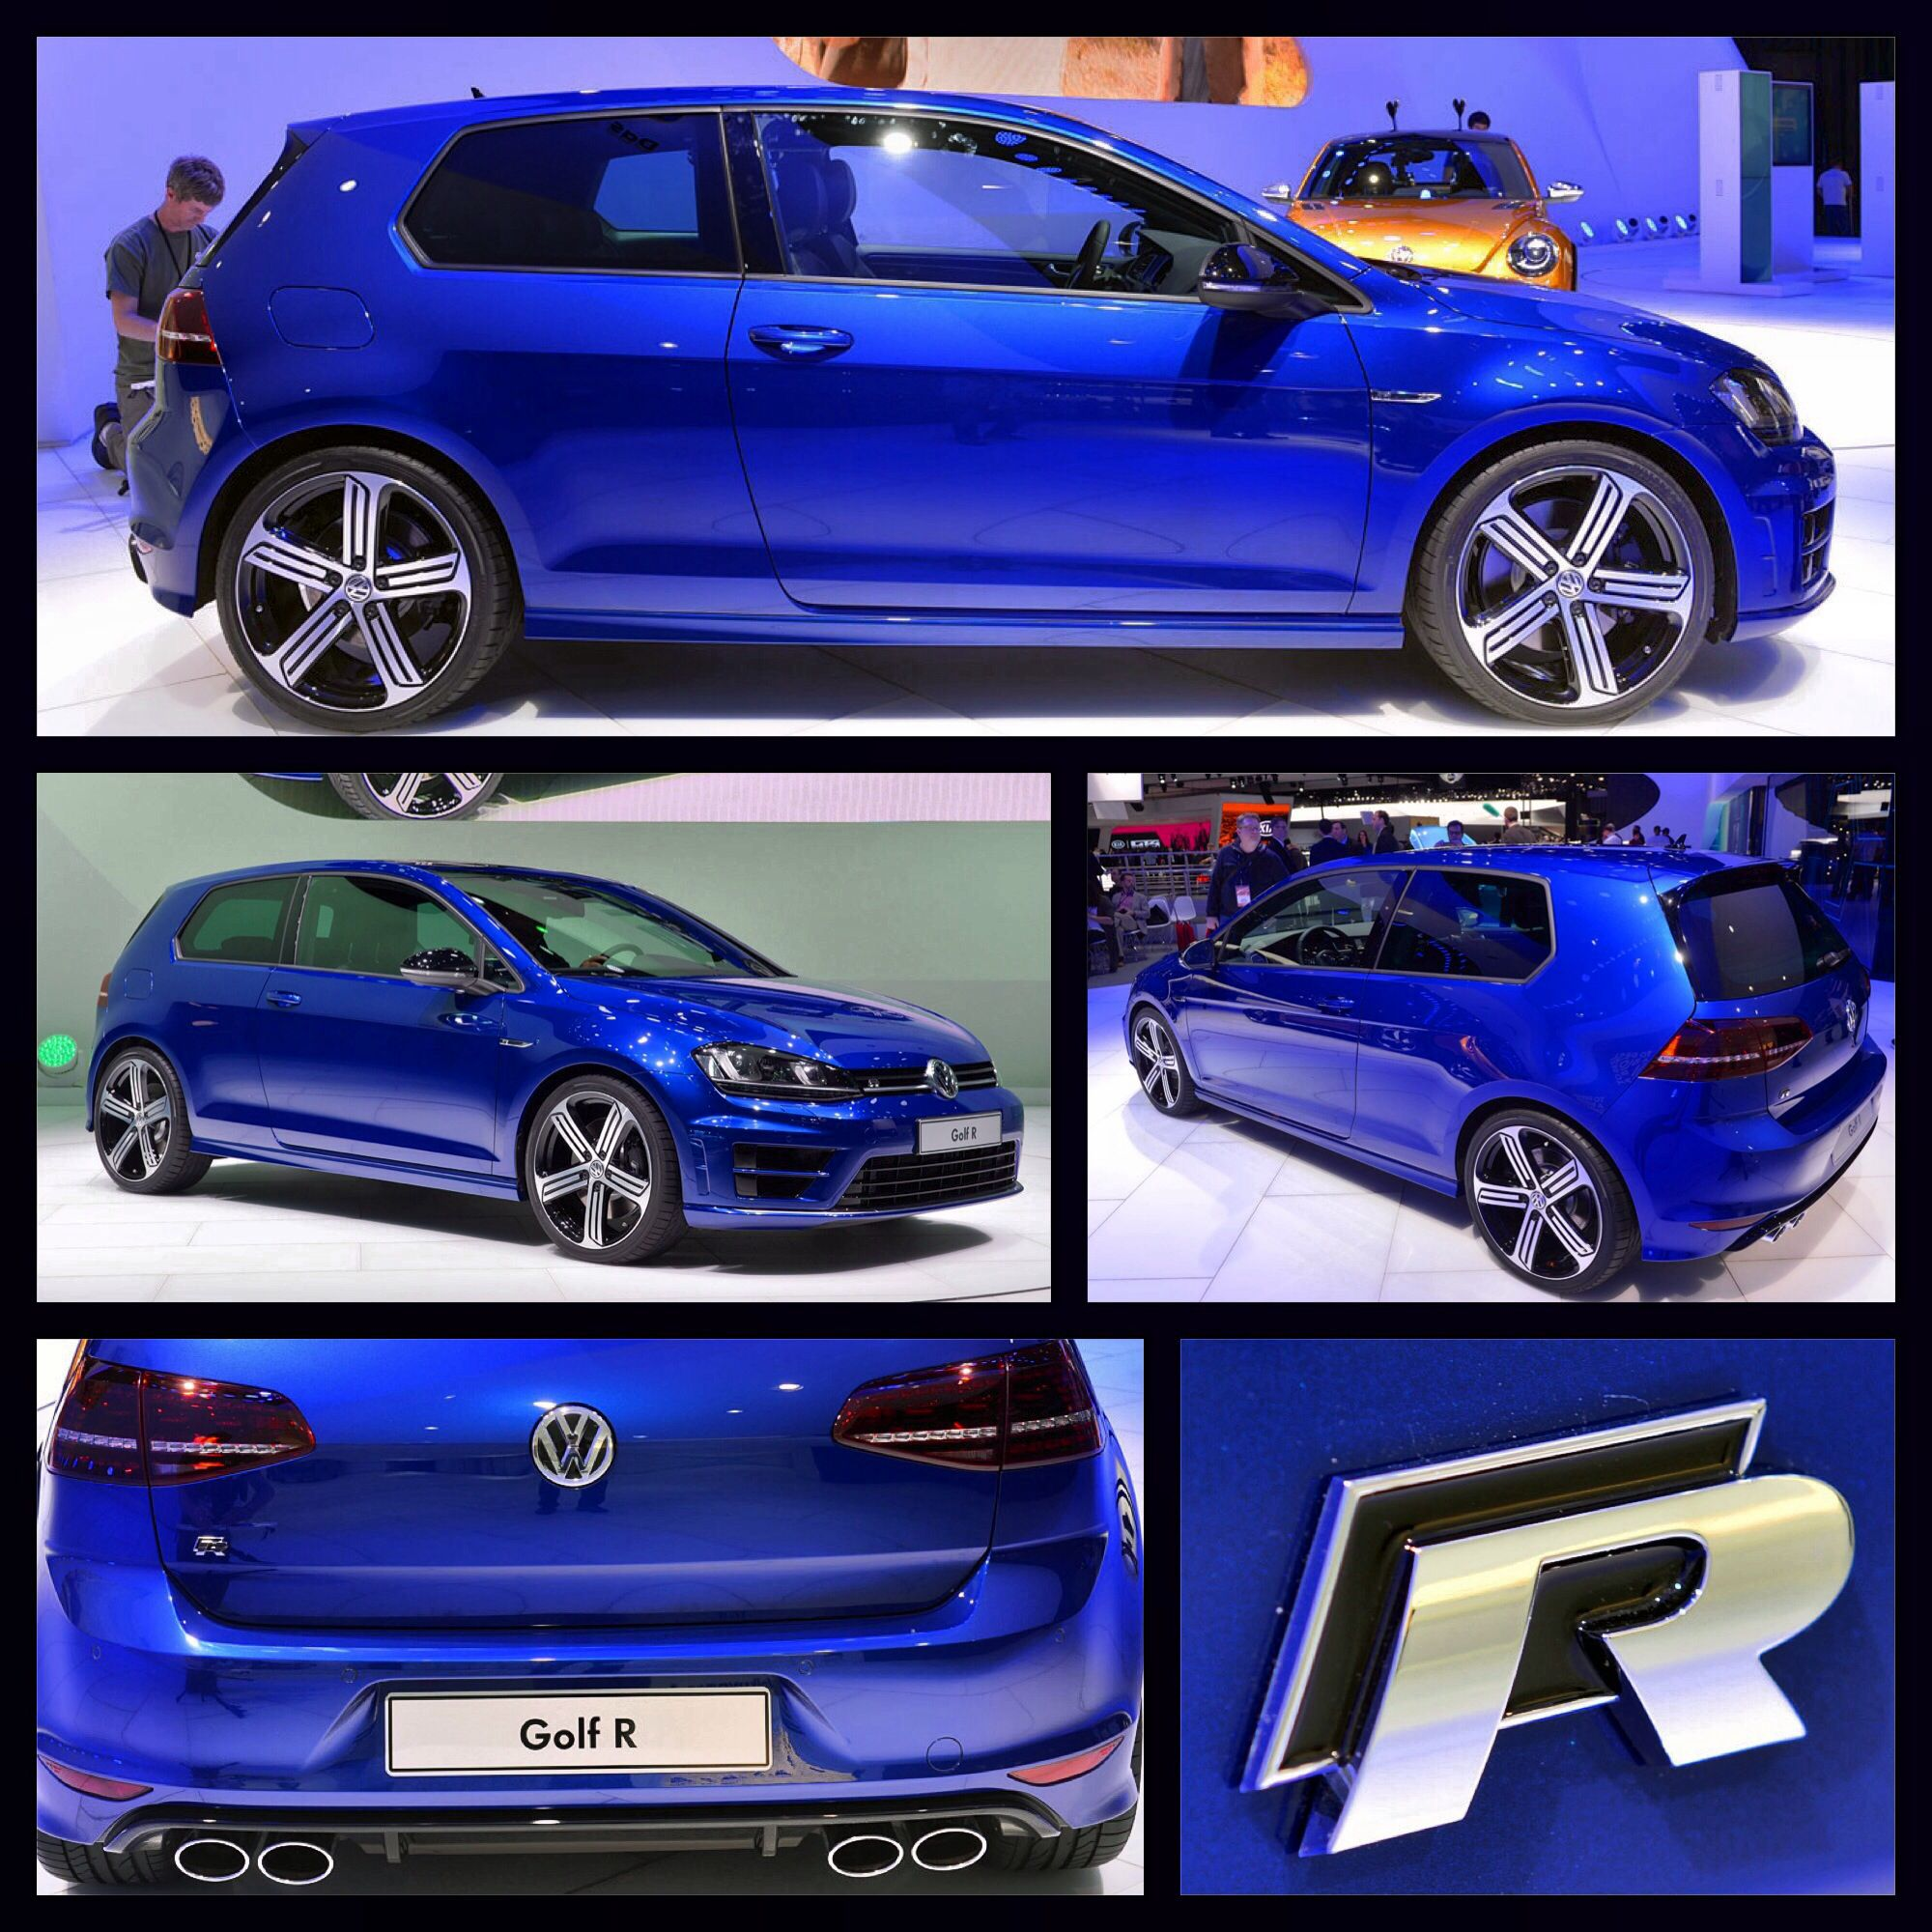 Cars Volkswagen Volkswagen Golf: 2015 VW Golf R YES PLEASE!!! My Future Ride!!